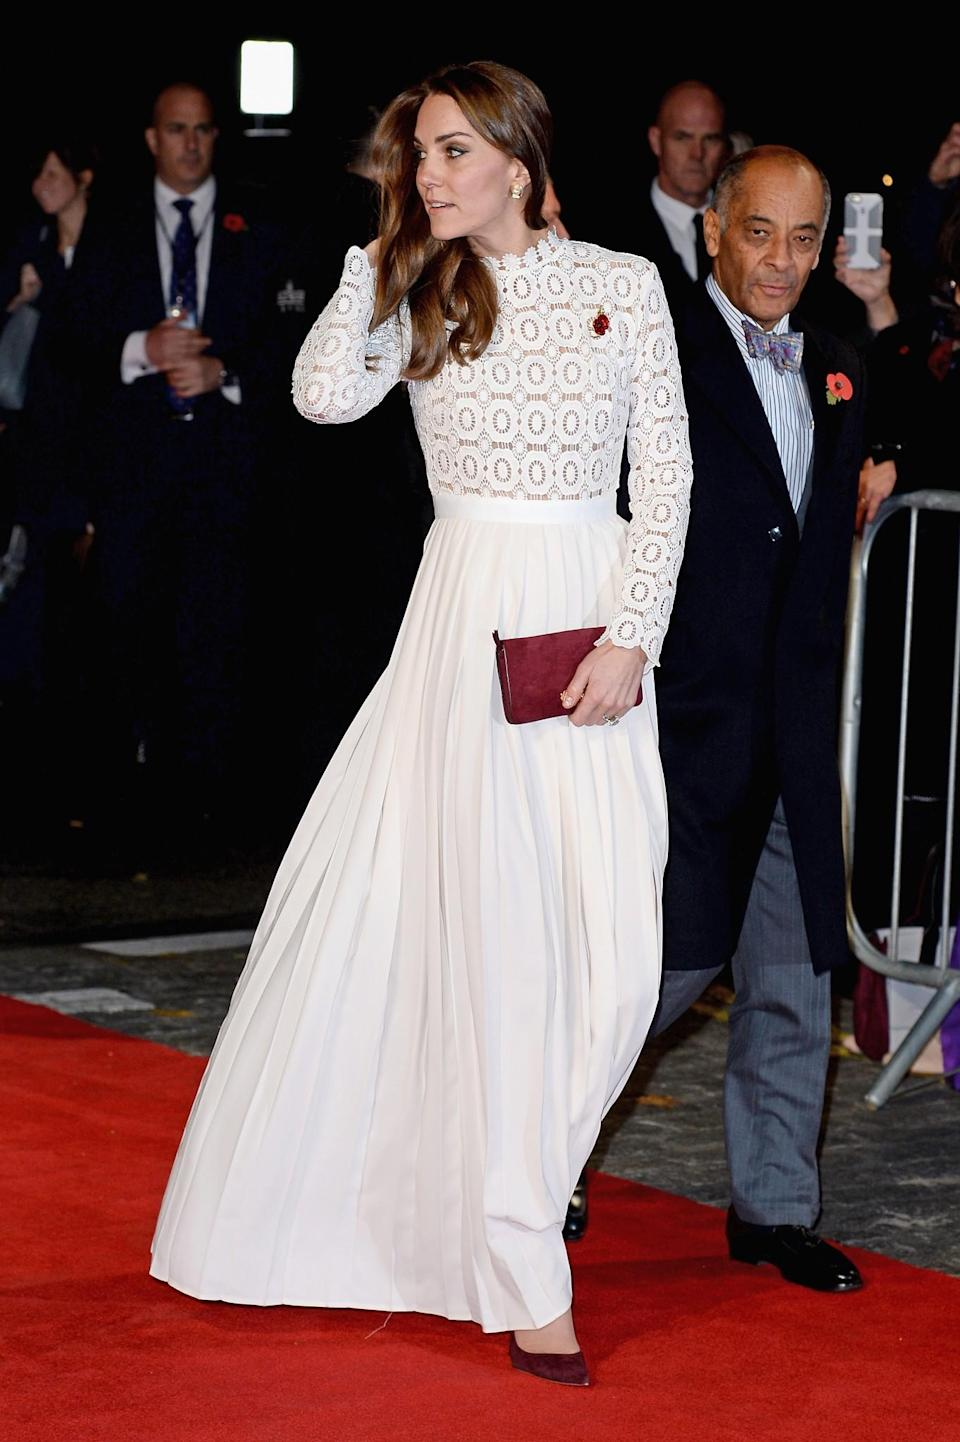 <p>In the space of a few years, Kate has become one of the world's most influential style icons. Mixing red carpet gowns with more formal workwear, she is able to sell out both high street and designer dresses in minutes. <i>[Photo: Getty]</i> </p>